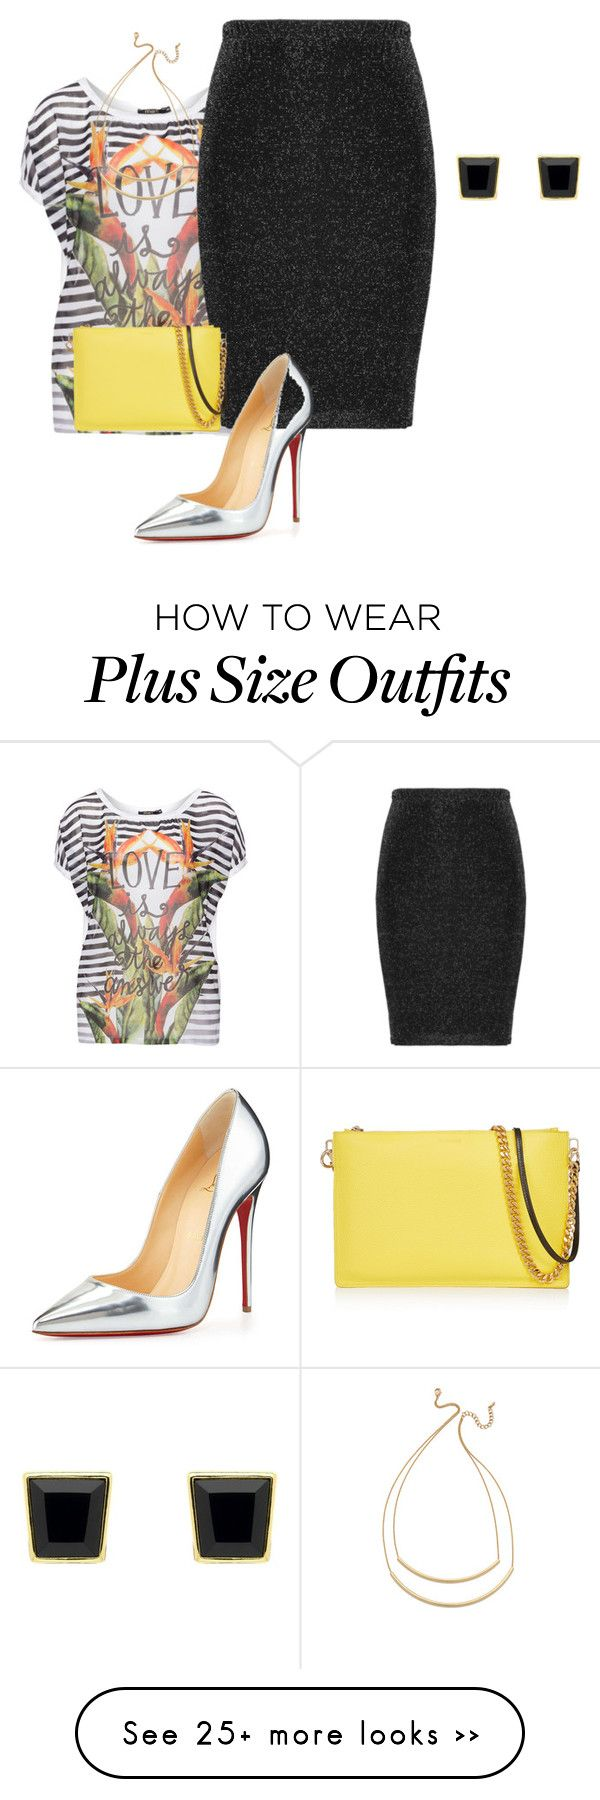 plus size eclectic night out by kristie-payne on Polyvore featuring Mat, Zizzi, Christian Louboutin, Jil Sander, Jules Smith and Monet